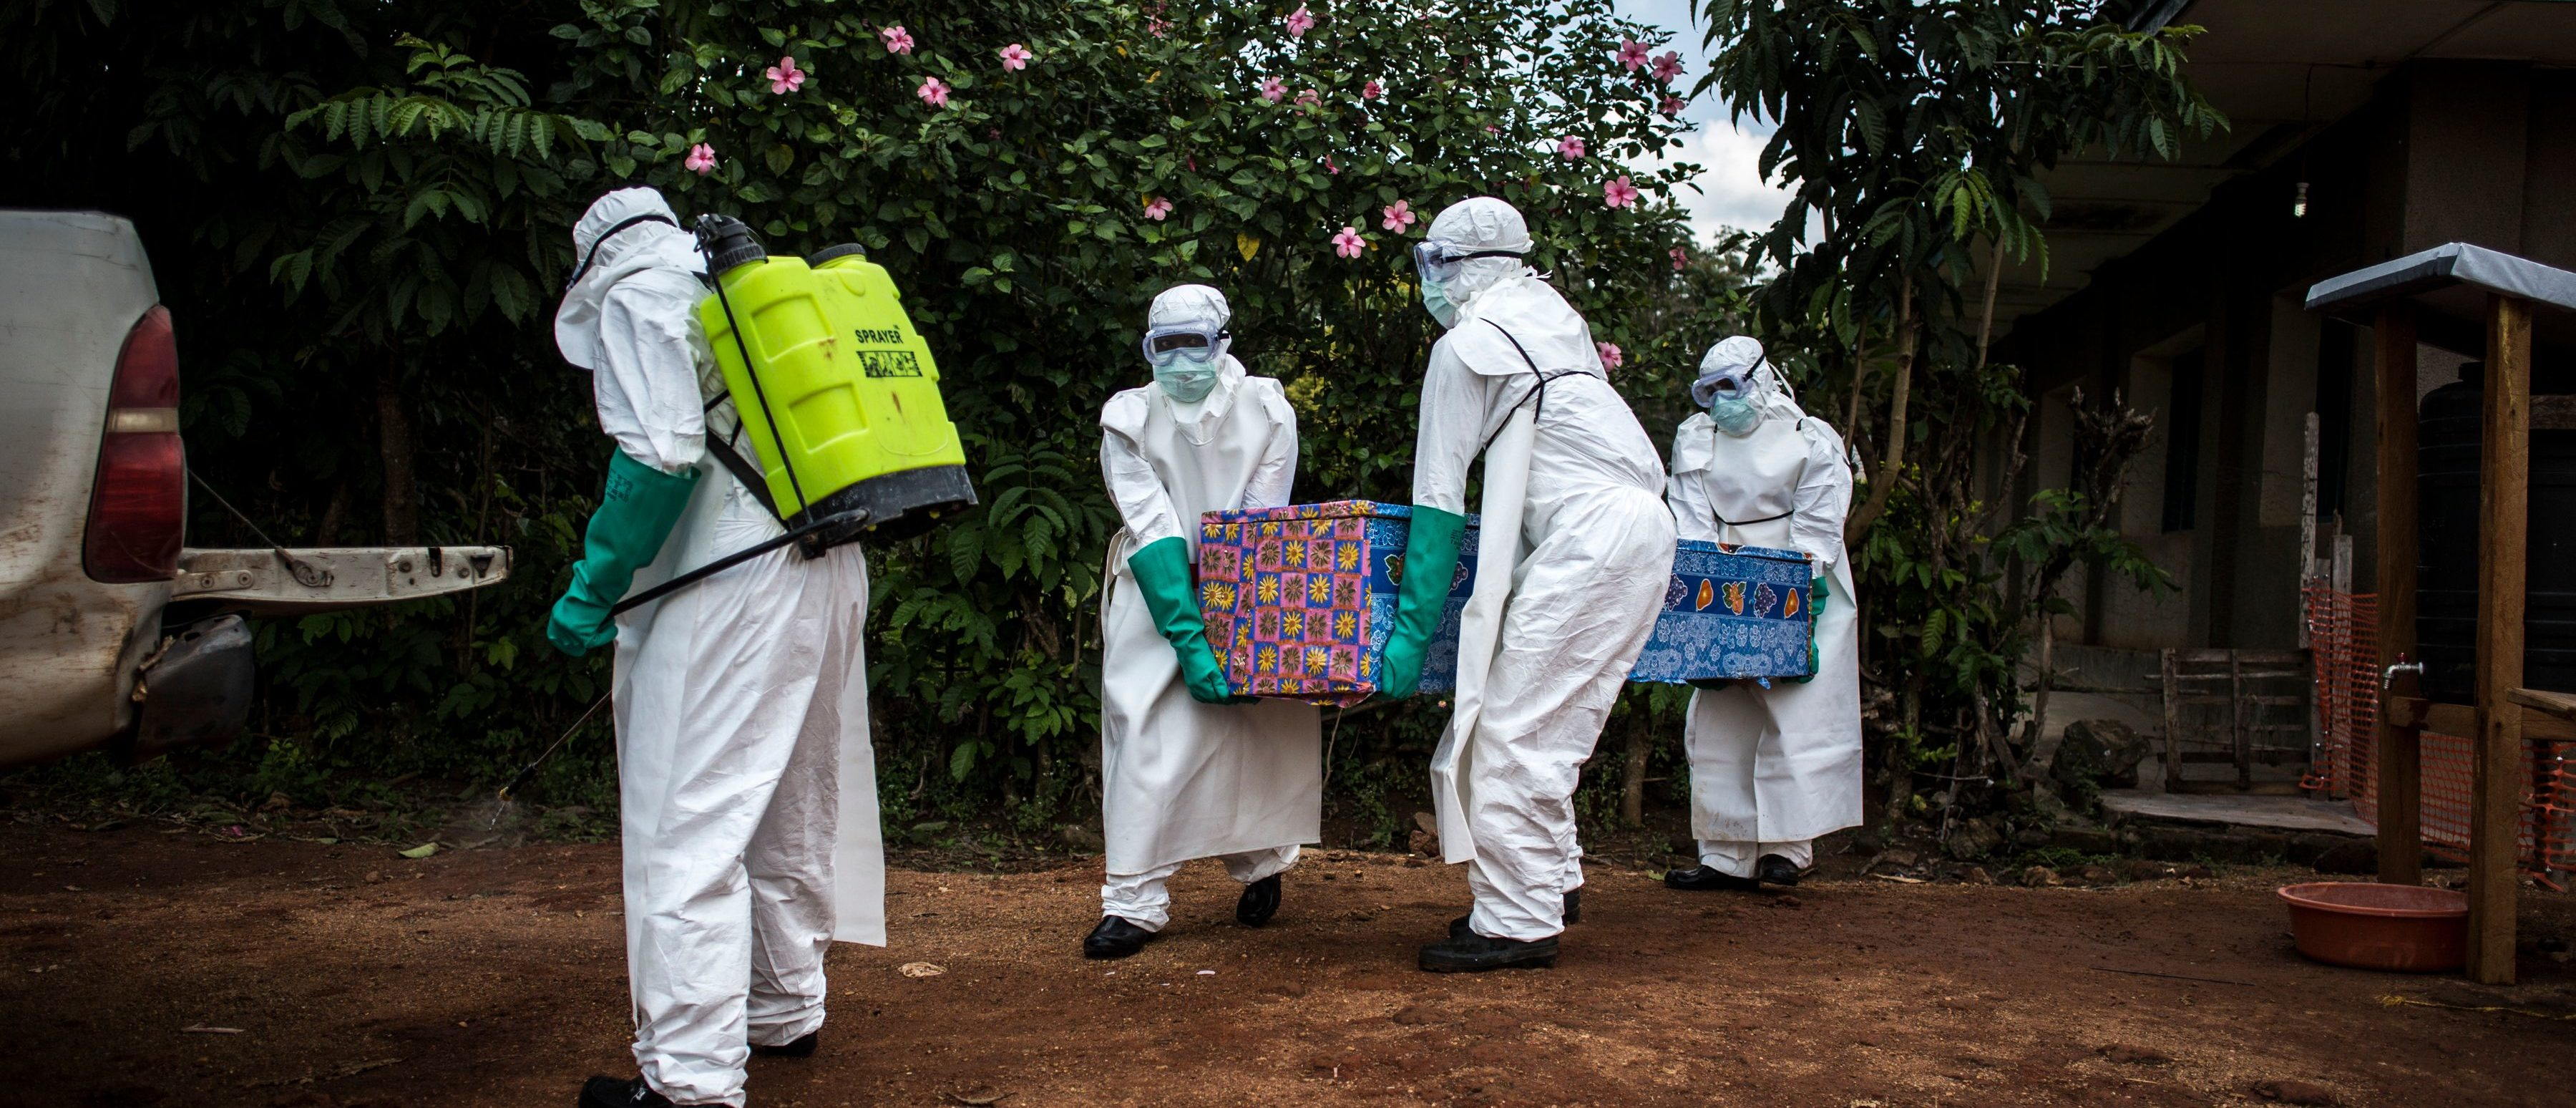 Health workers carry out the body of a patient with unconfirmed Ebola virus on August 22, 2018 in Mangina, near Beni, in the North Kivu province. (JOHN WESSELS/AFP/Getty Images)